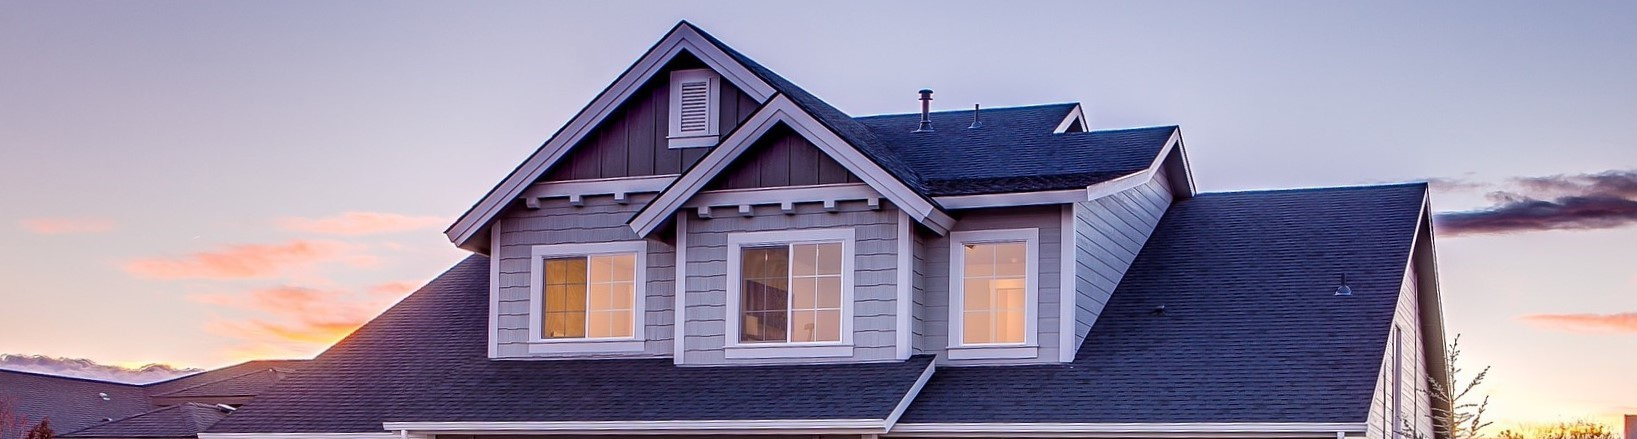 Johnson Exteriors for high quality roofing for your Minnesota home.